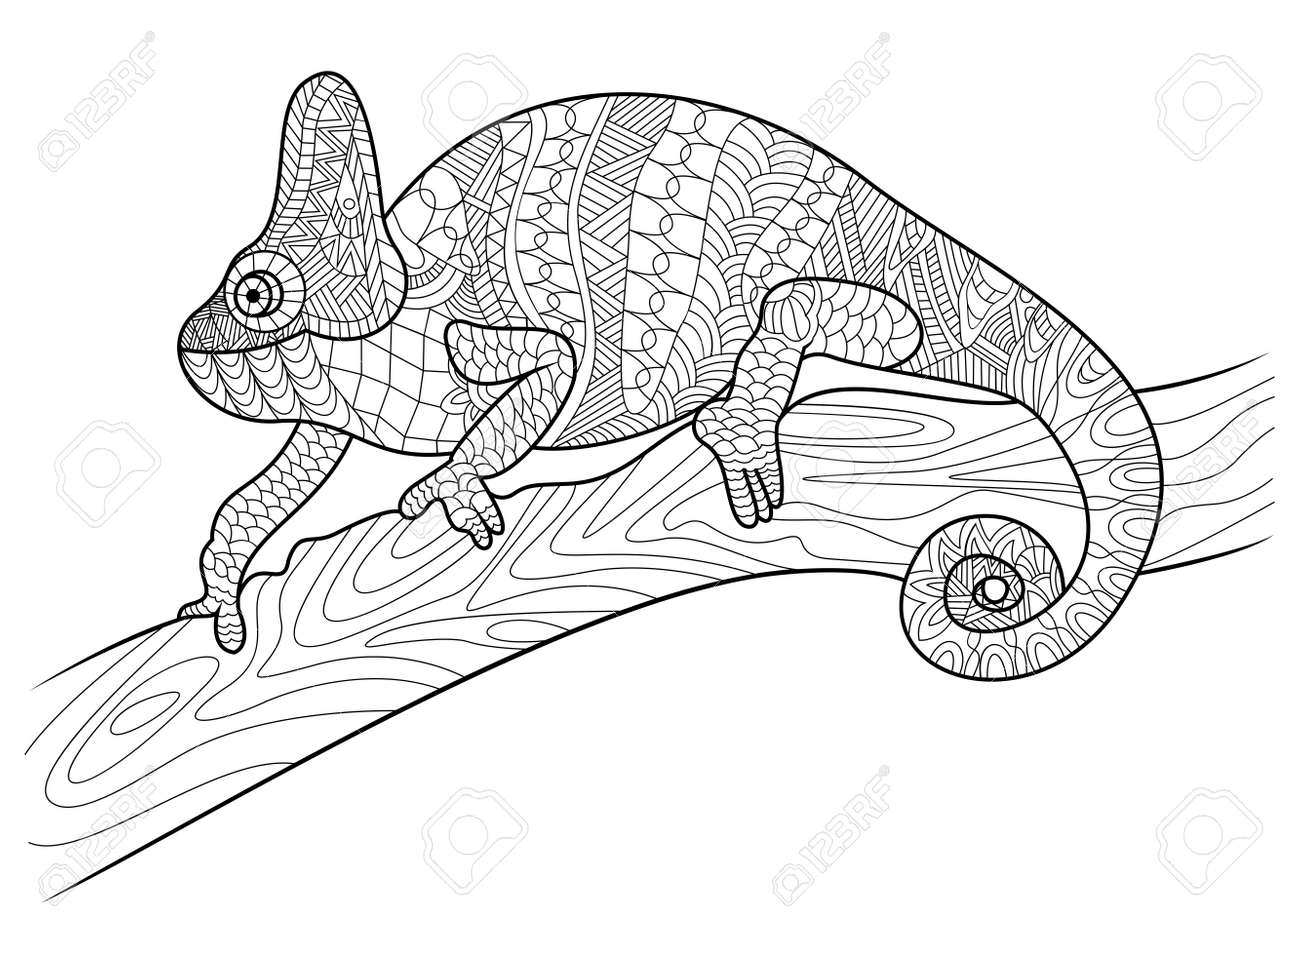 Chameleon Animal Coloring Book For Adults Vector Illustration Black And White Lines Lace Pattern